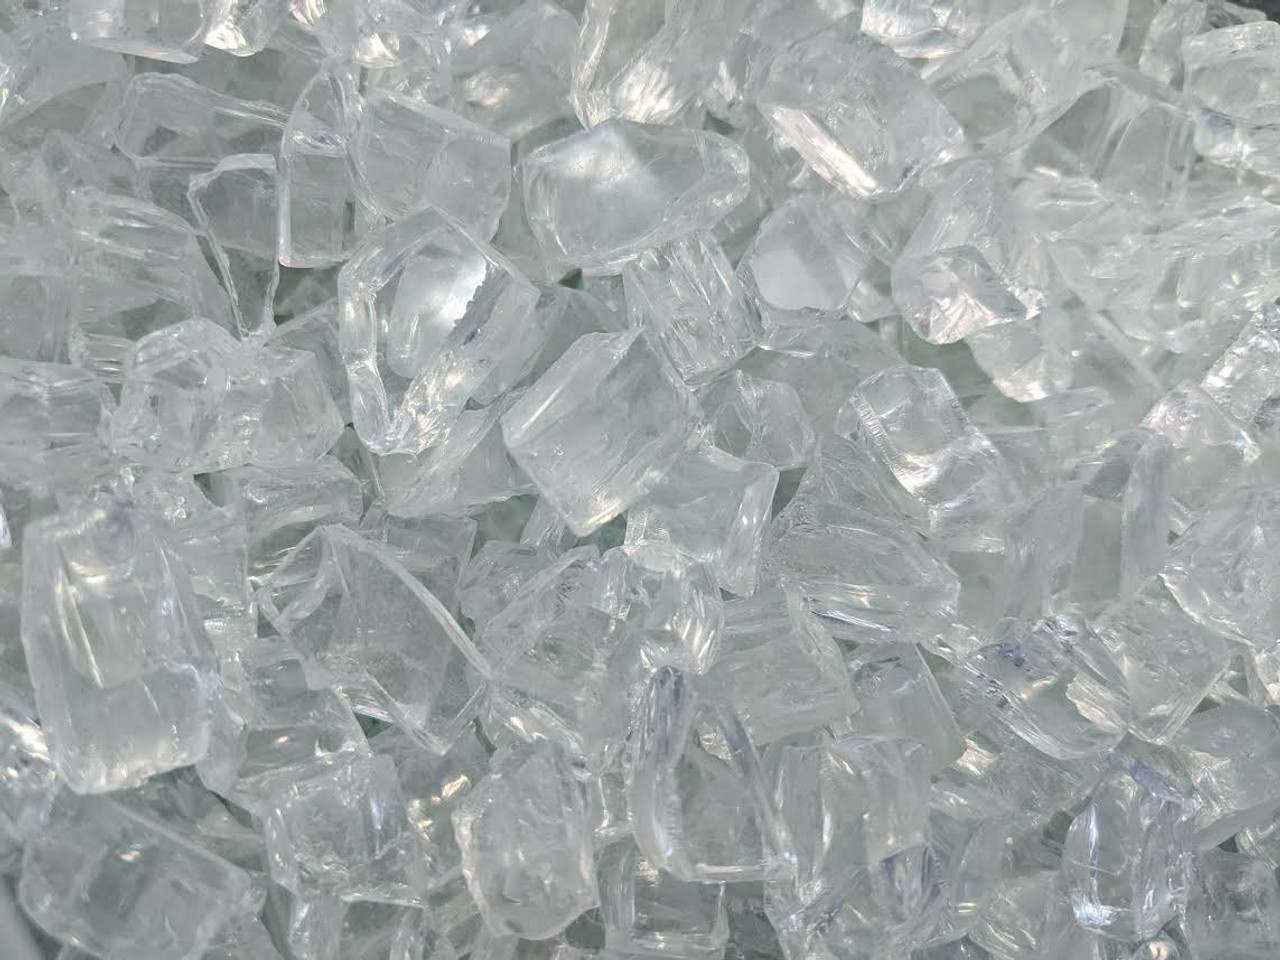 Clear Tempered Glass - 1/2 lb